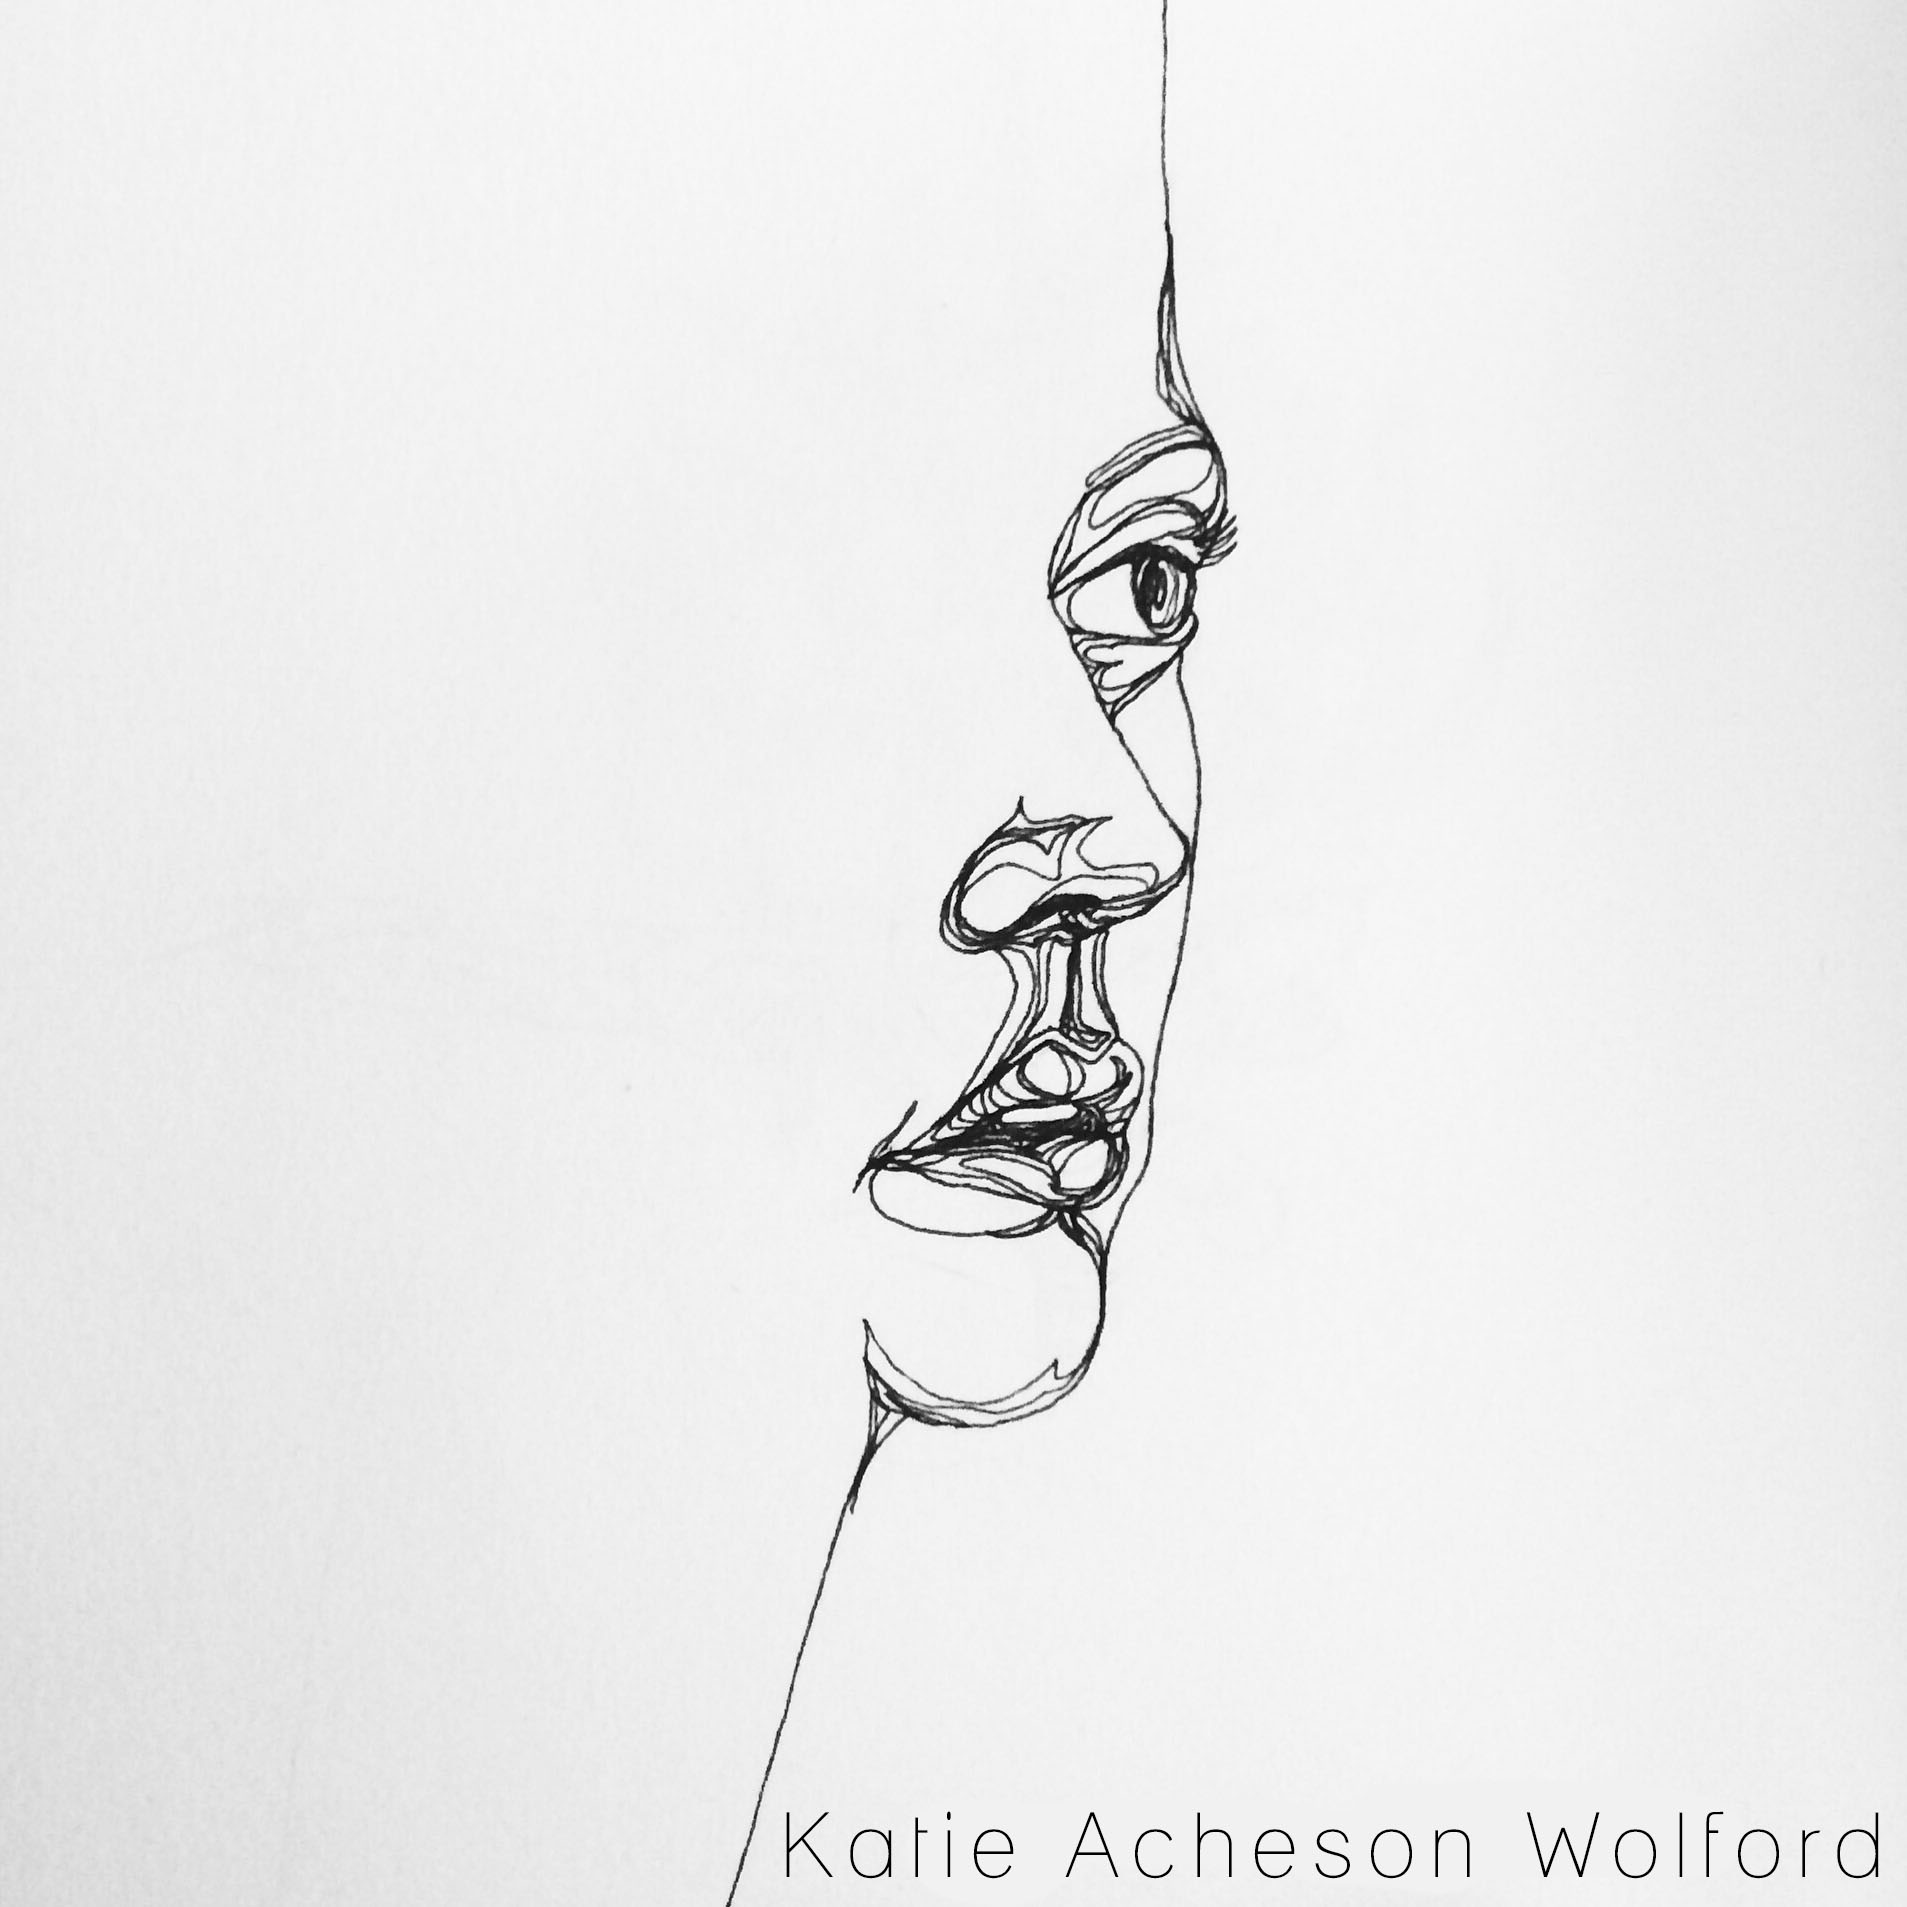 one-line-face-katie-acheson-wolford.jpg